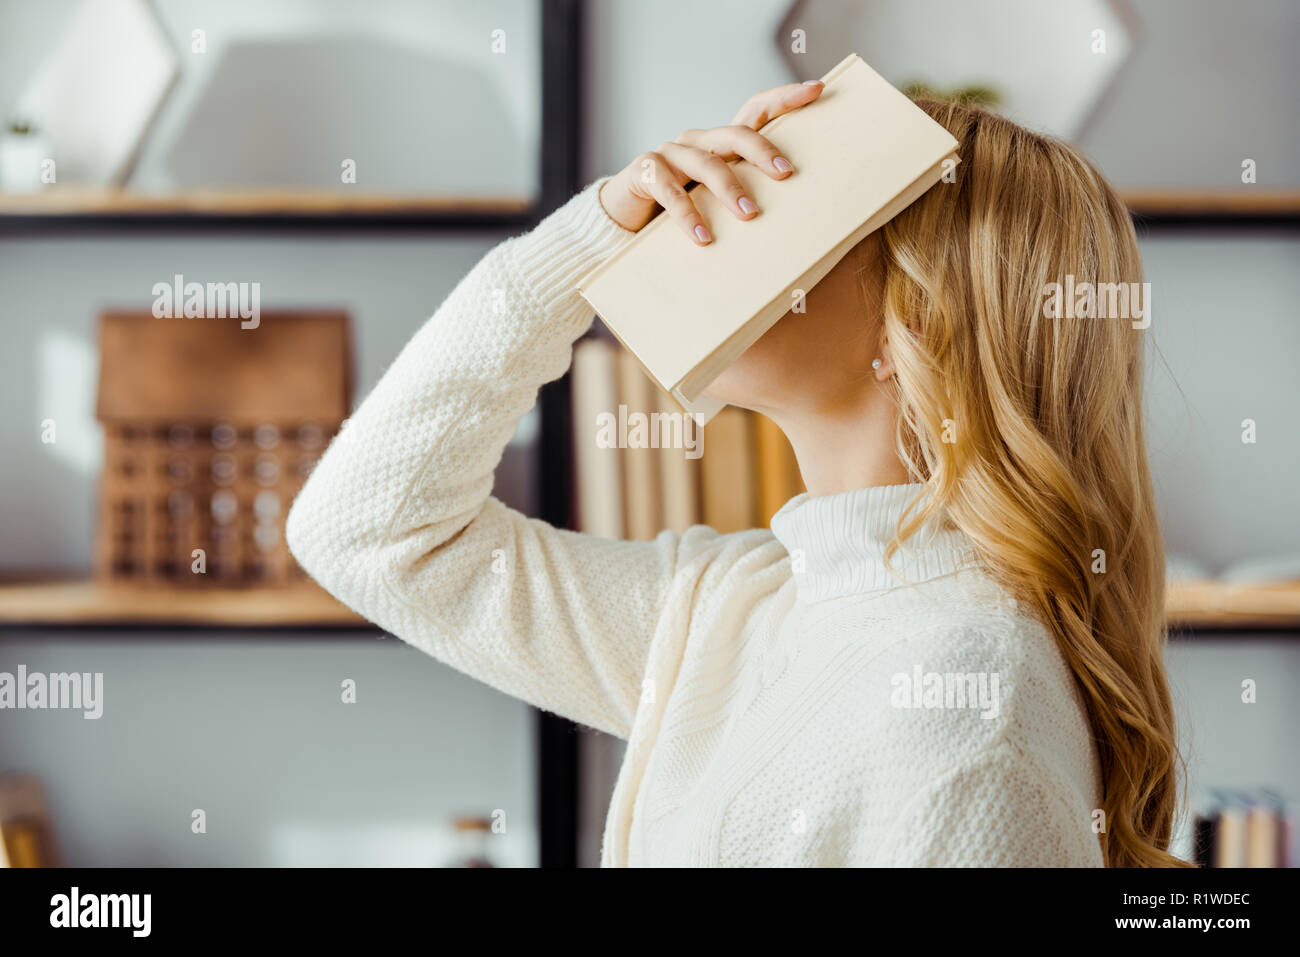 close up of blonde woman putting book on face - Stock Image